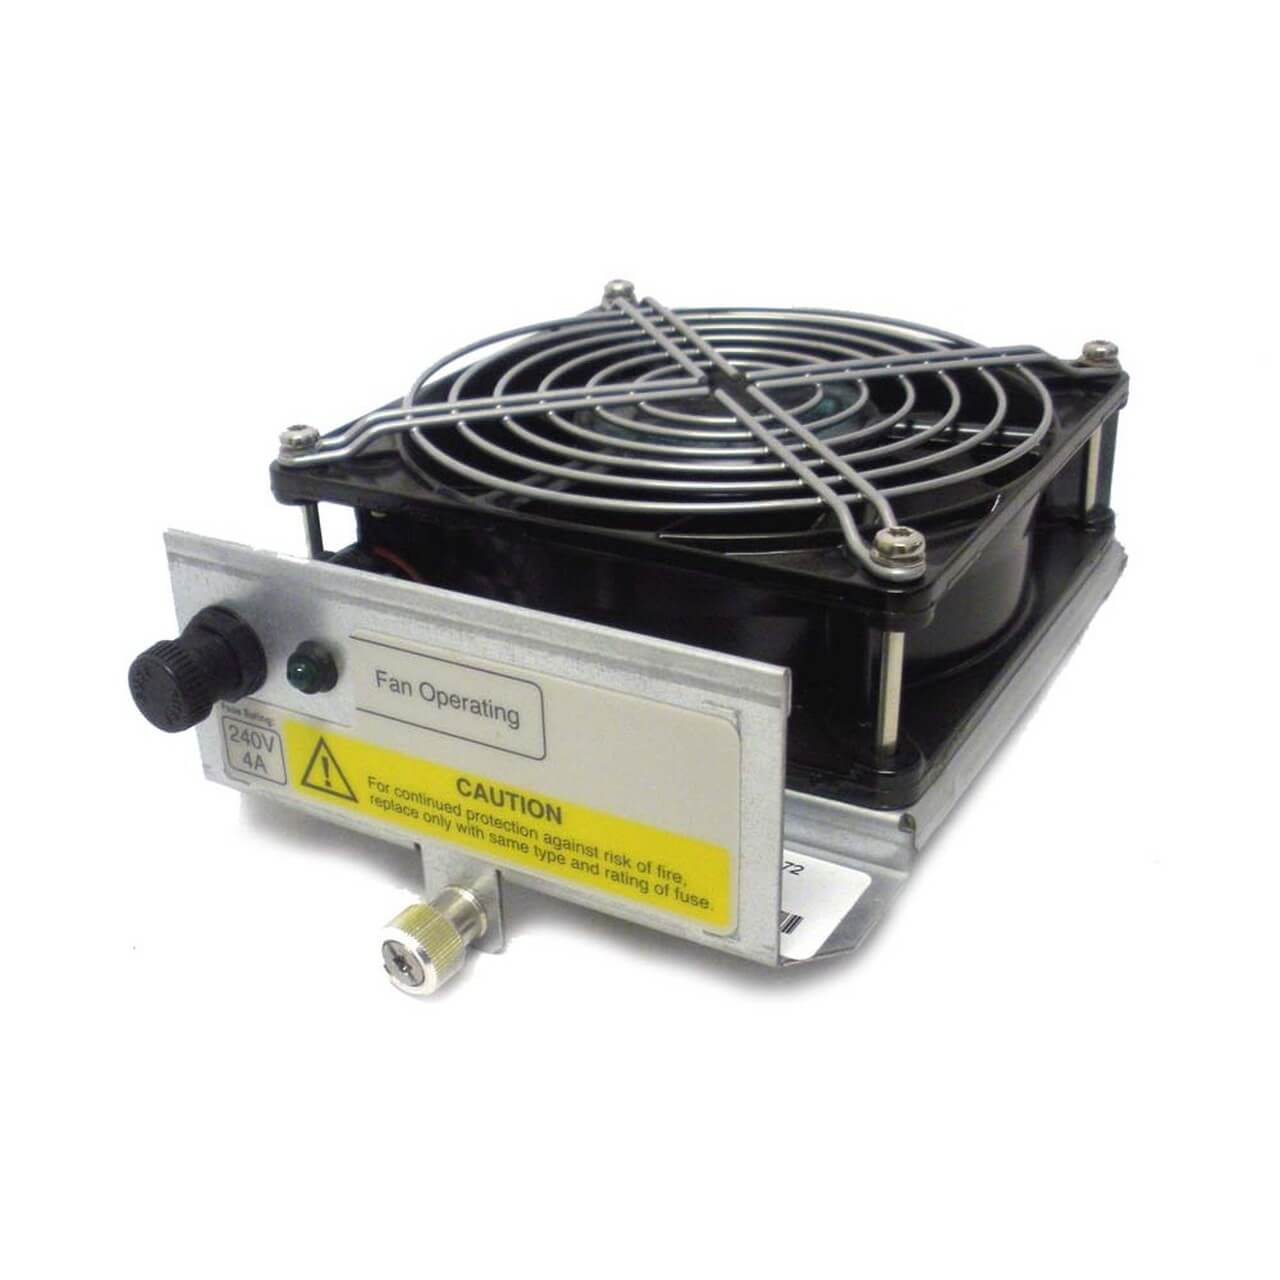 Buy & save refurbished HP Fans & Blowers for computer servers from your trusted partners at Flagship Technologies.